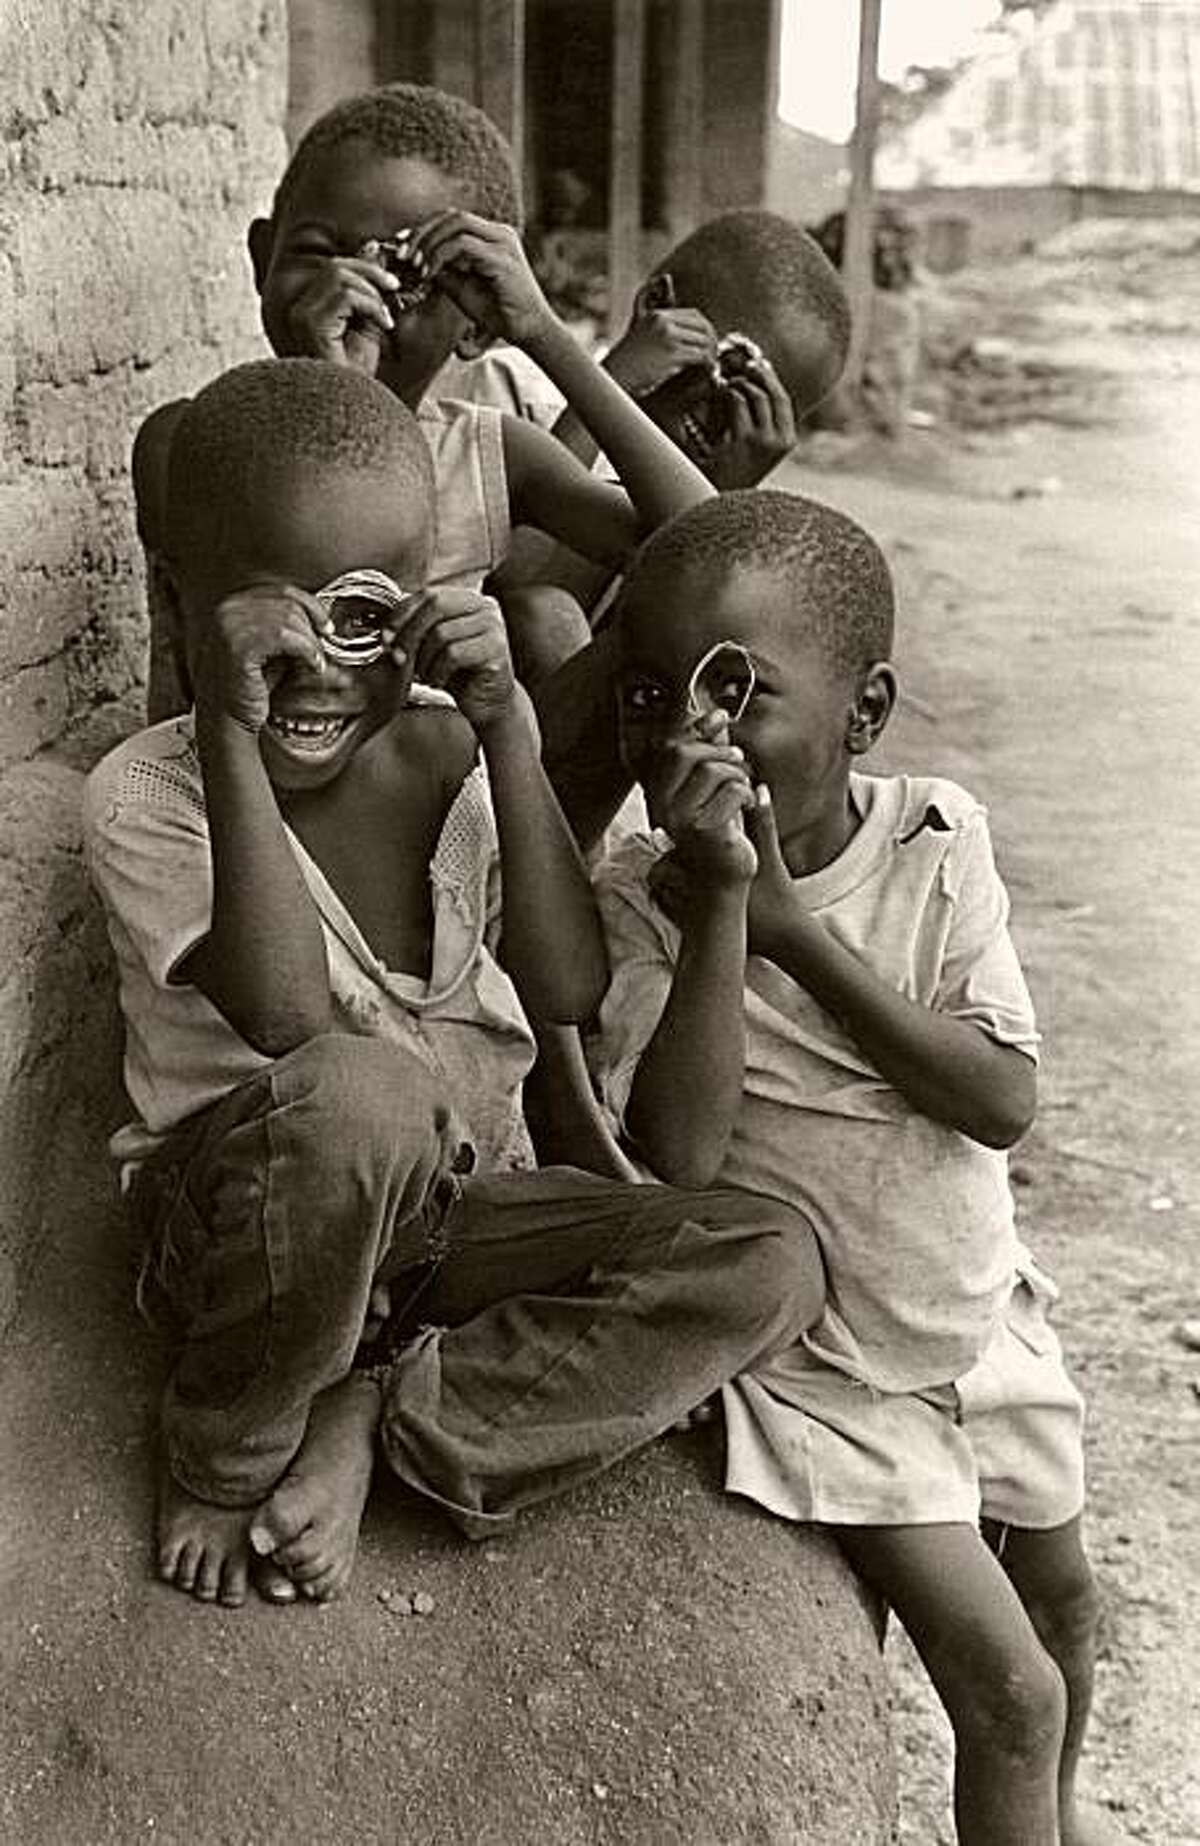 Children in Sierra Leone fashion their own camera lenses from weeds and mimic photographer Michael Katakis, 1988.